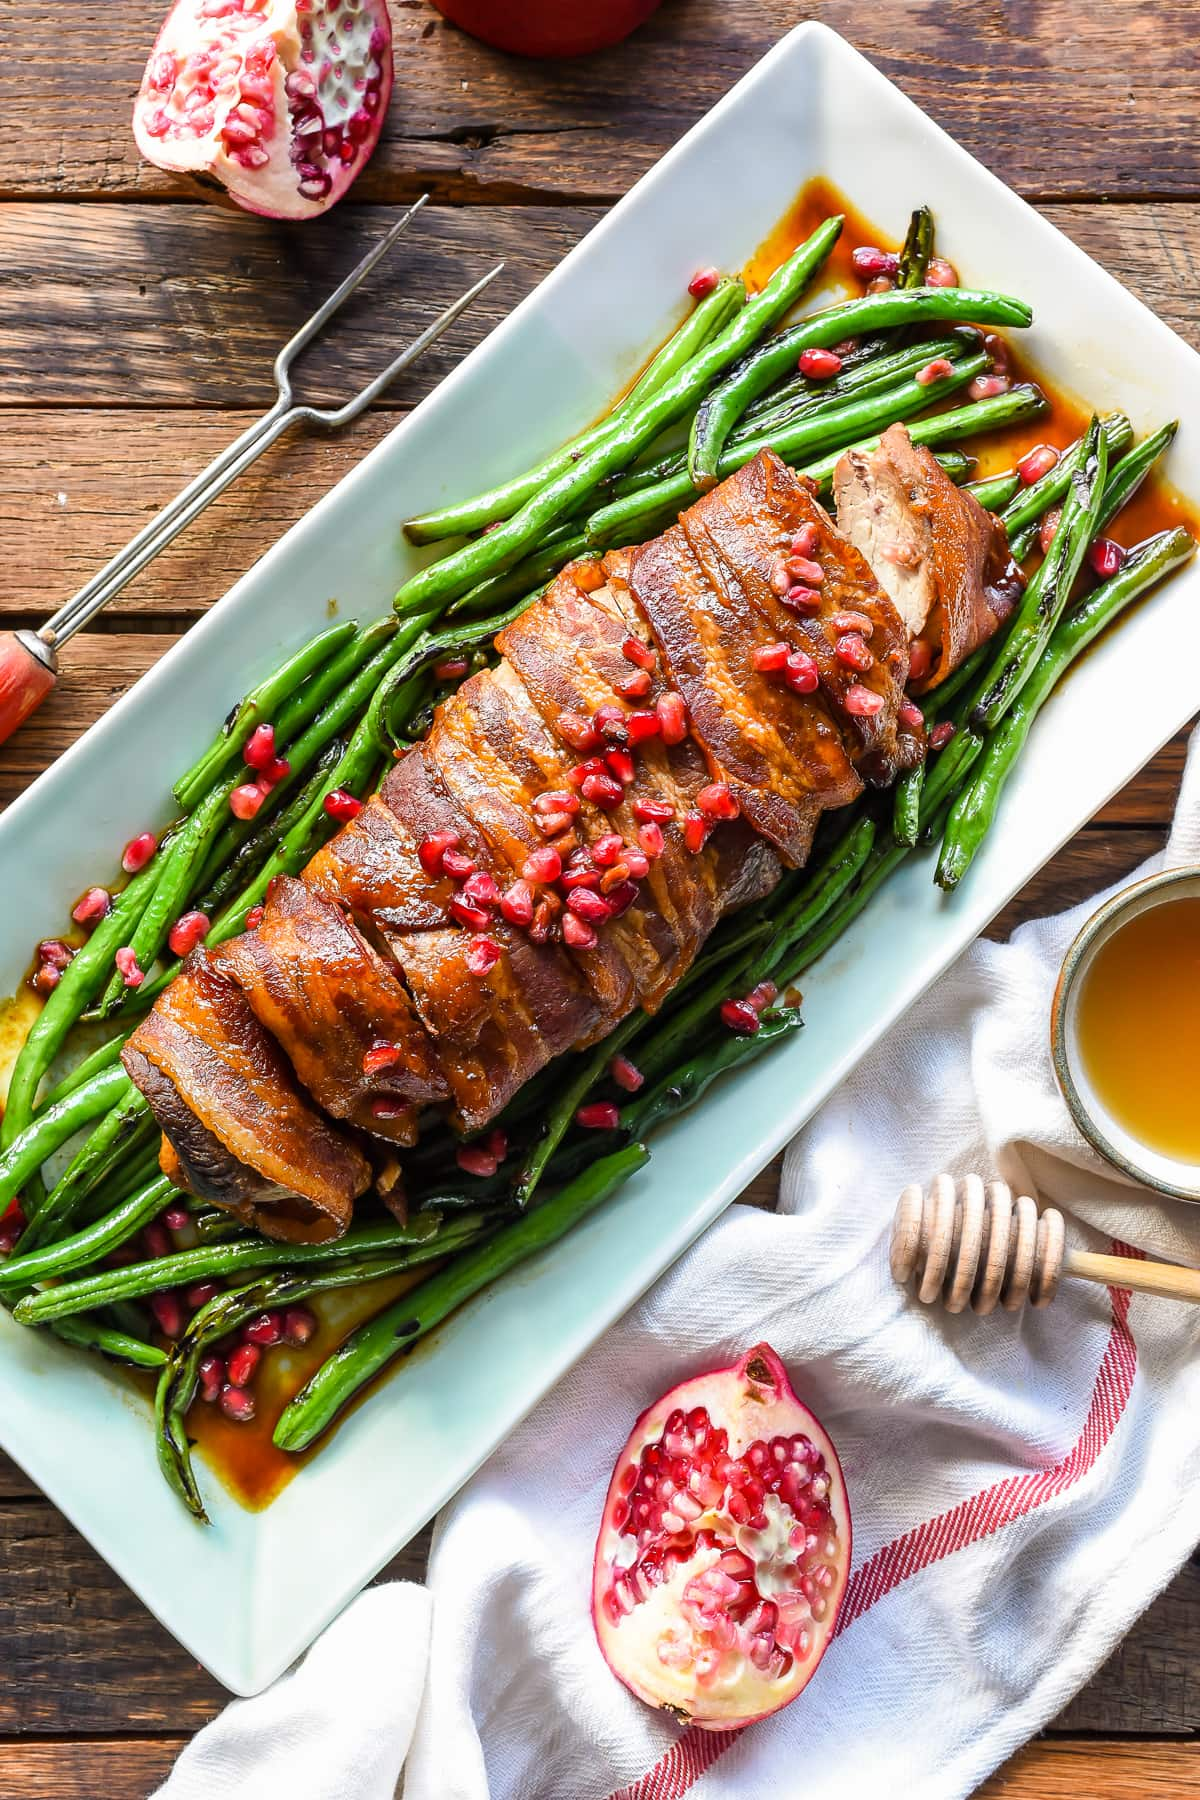 This Bacon Wrapped Pork Tenderloin is an EASY main dish for your holiday entertaining!